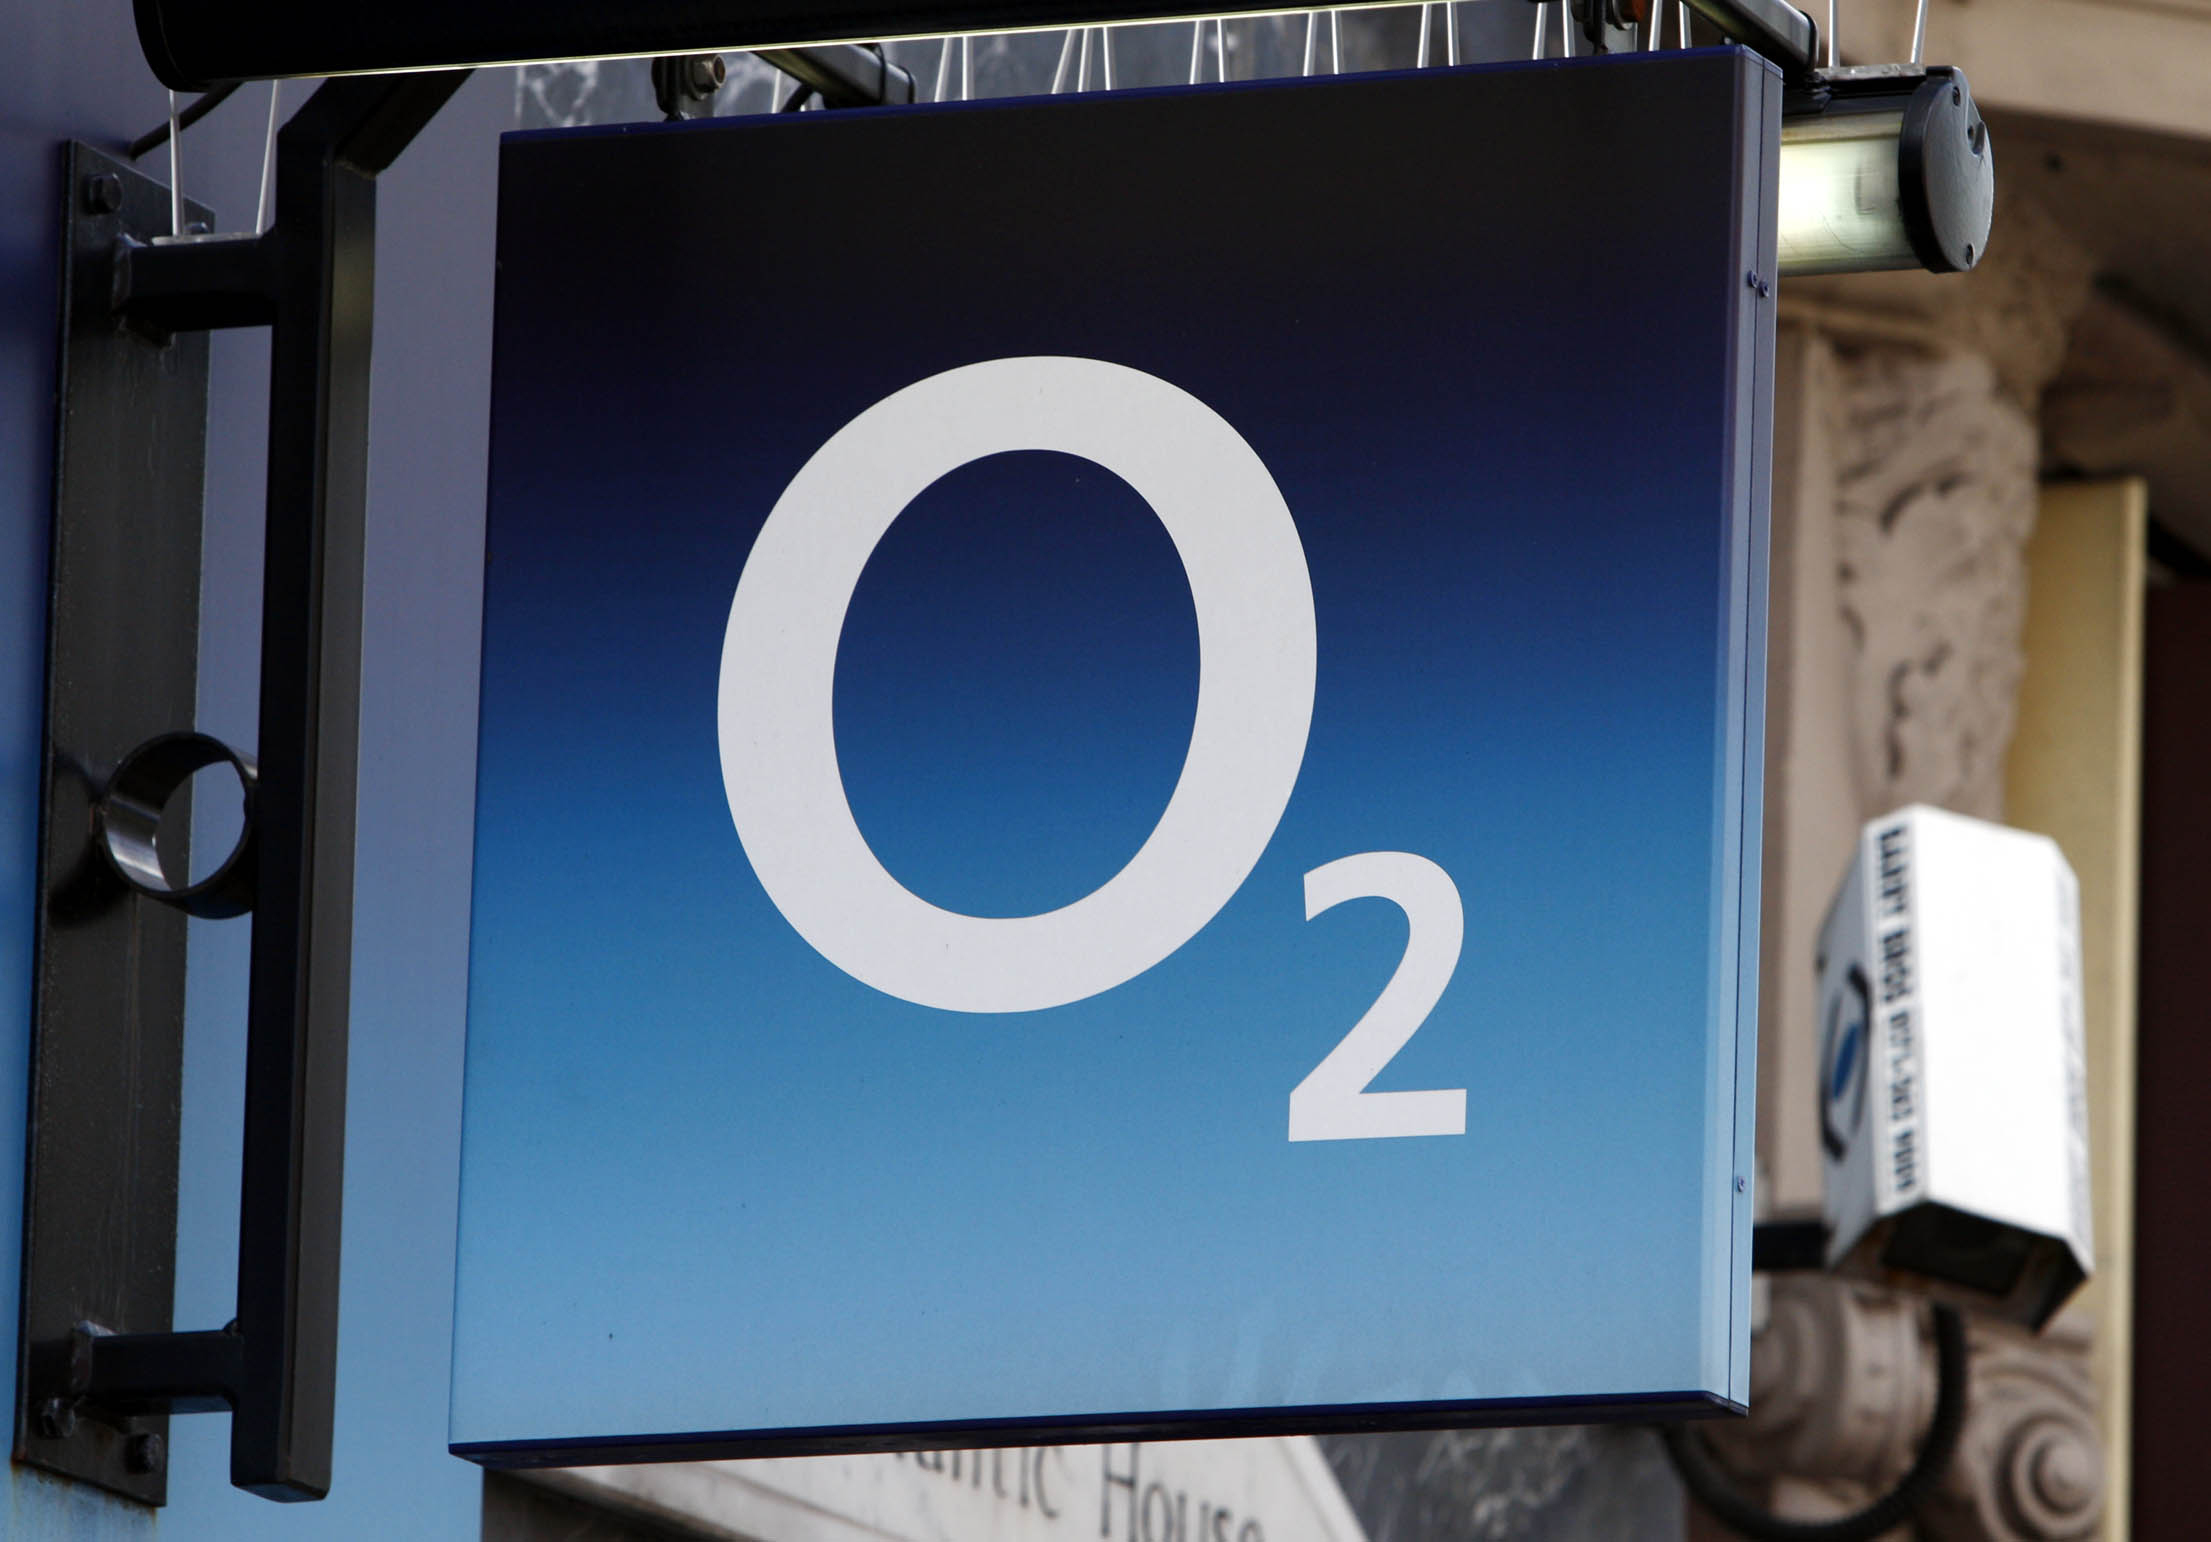 O2 blames network outage on third-party software glitch